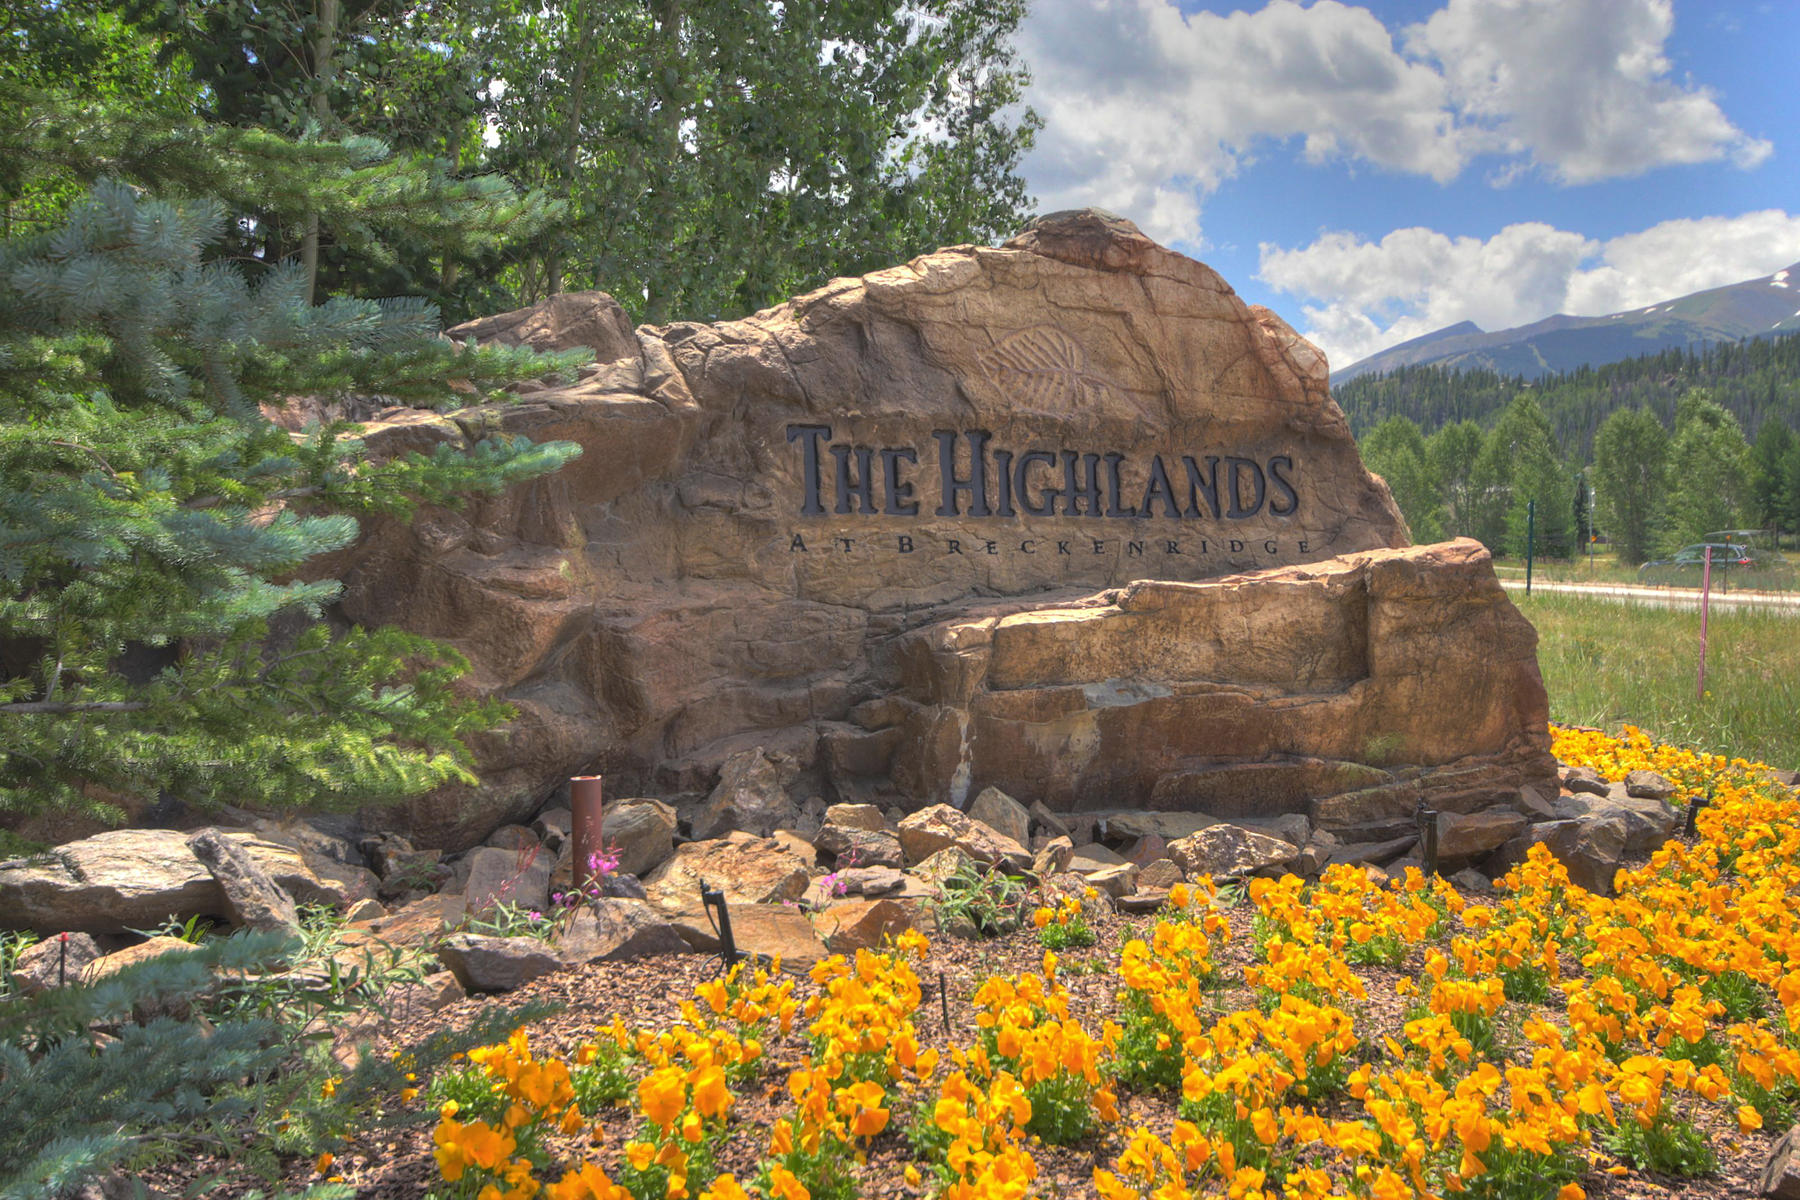 Lot 45 in The Highlands 165 Dyer Trail Breckenridge, Colorado 80424 United States